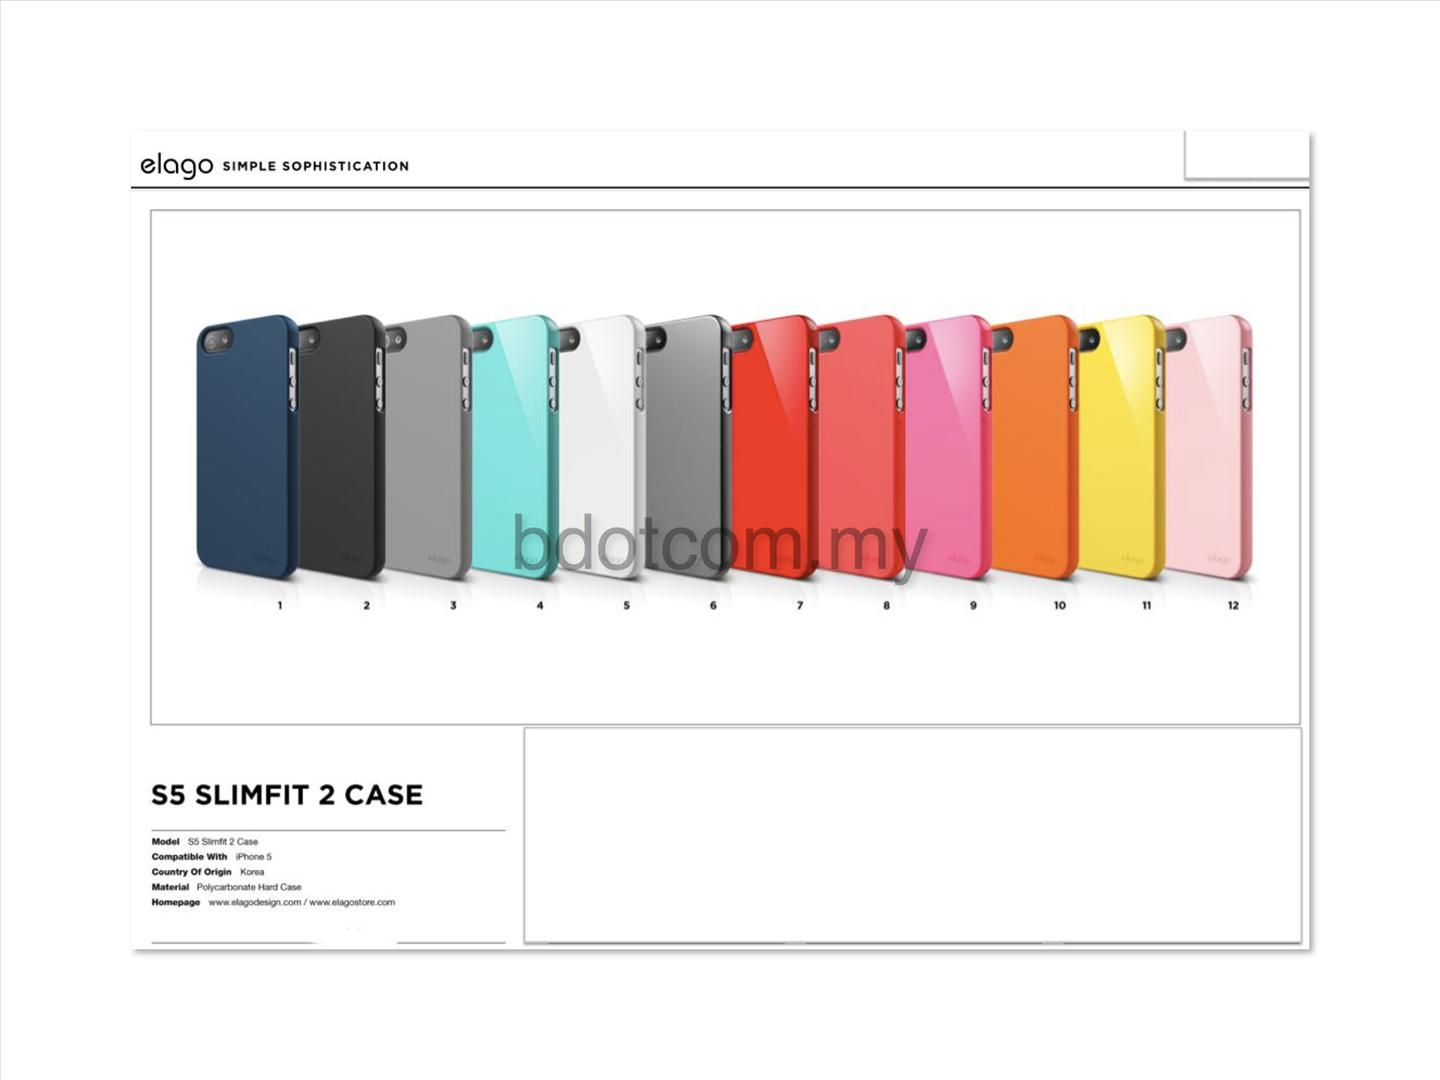 Bdotcom = Apple iPhone 5 Elago S5 SlimFit Case